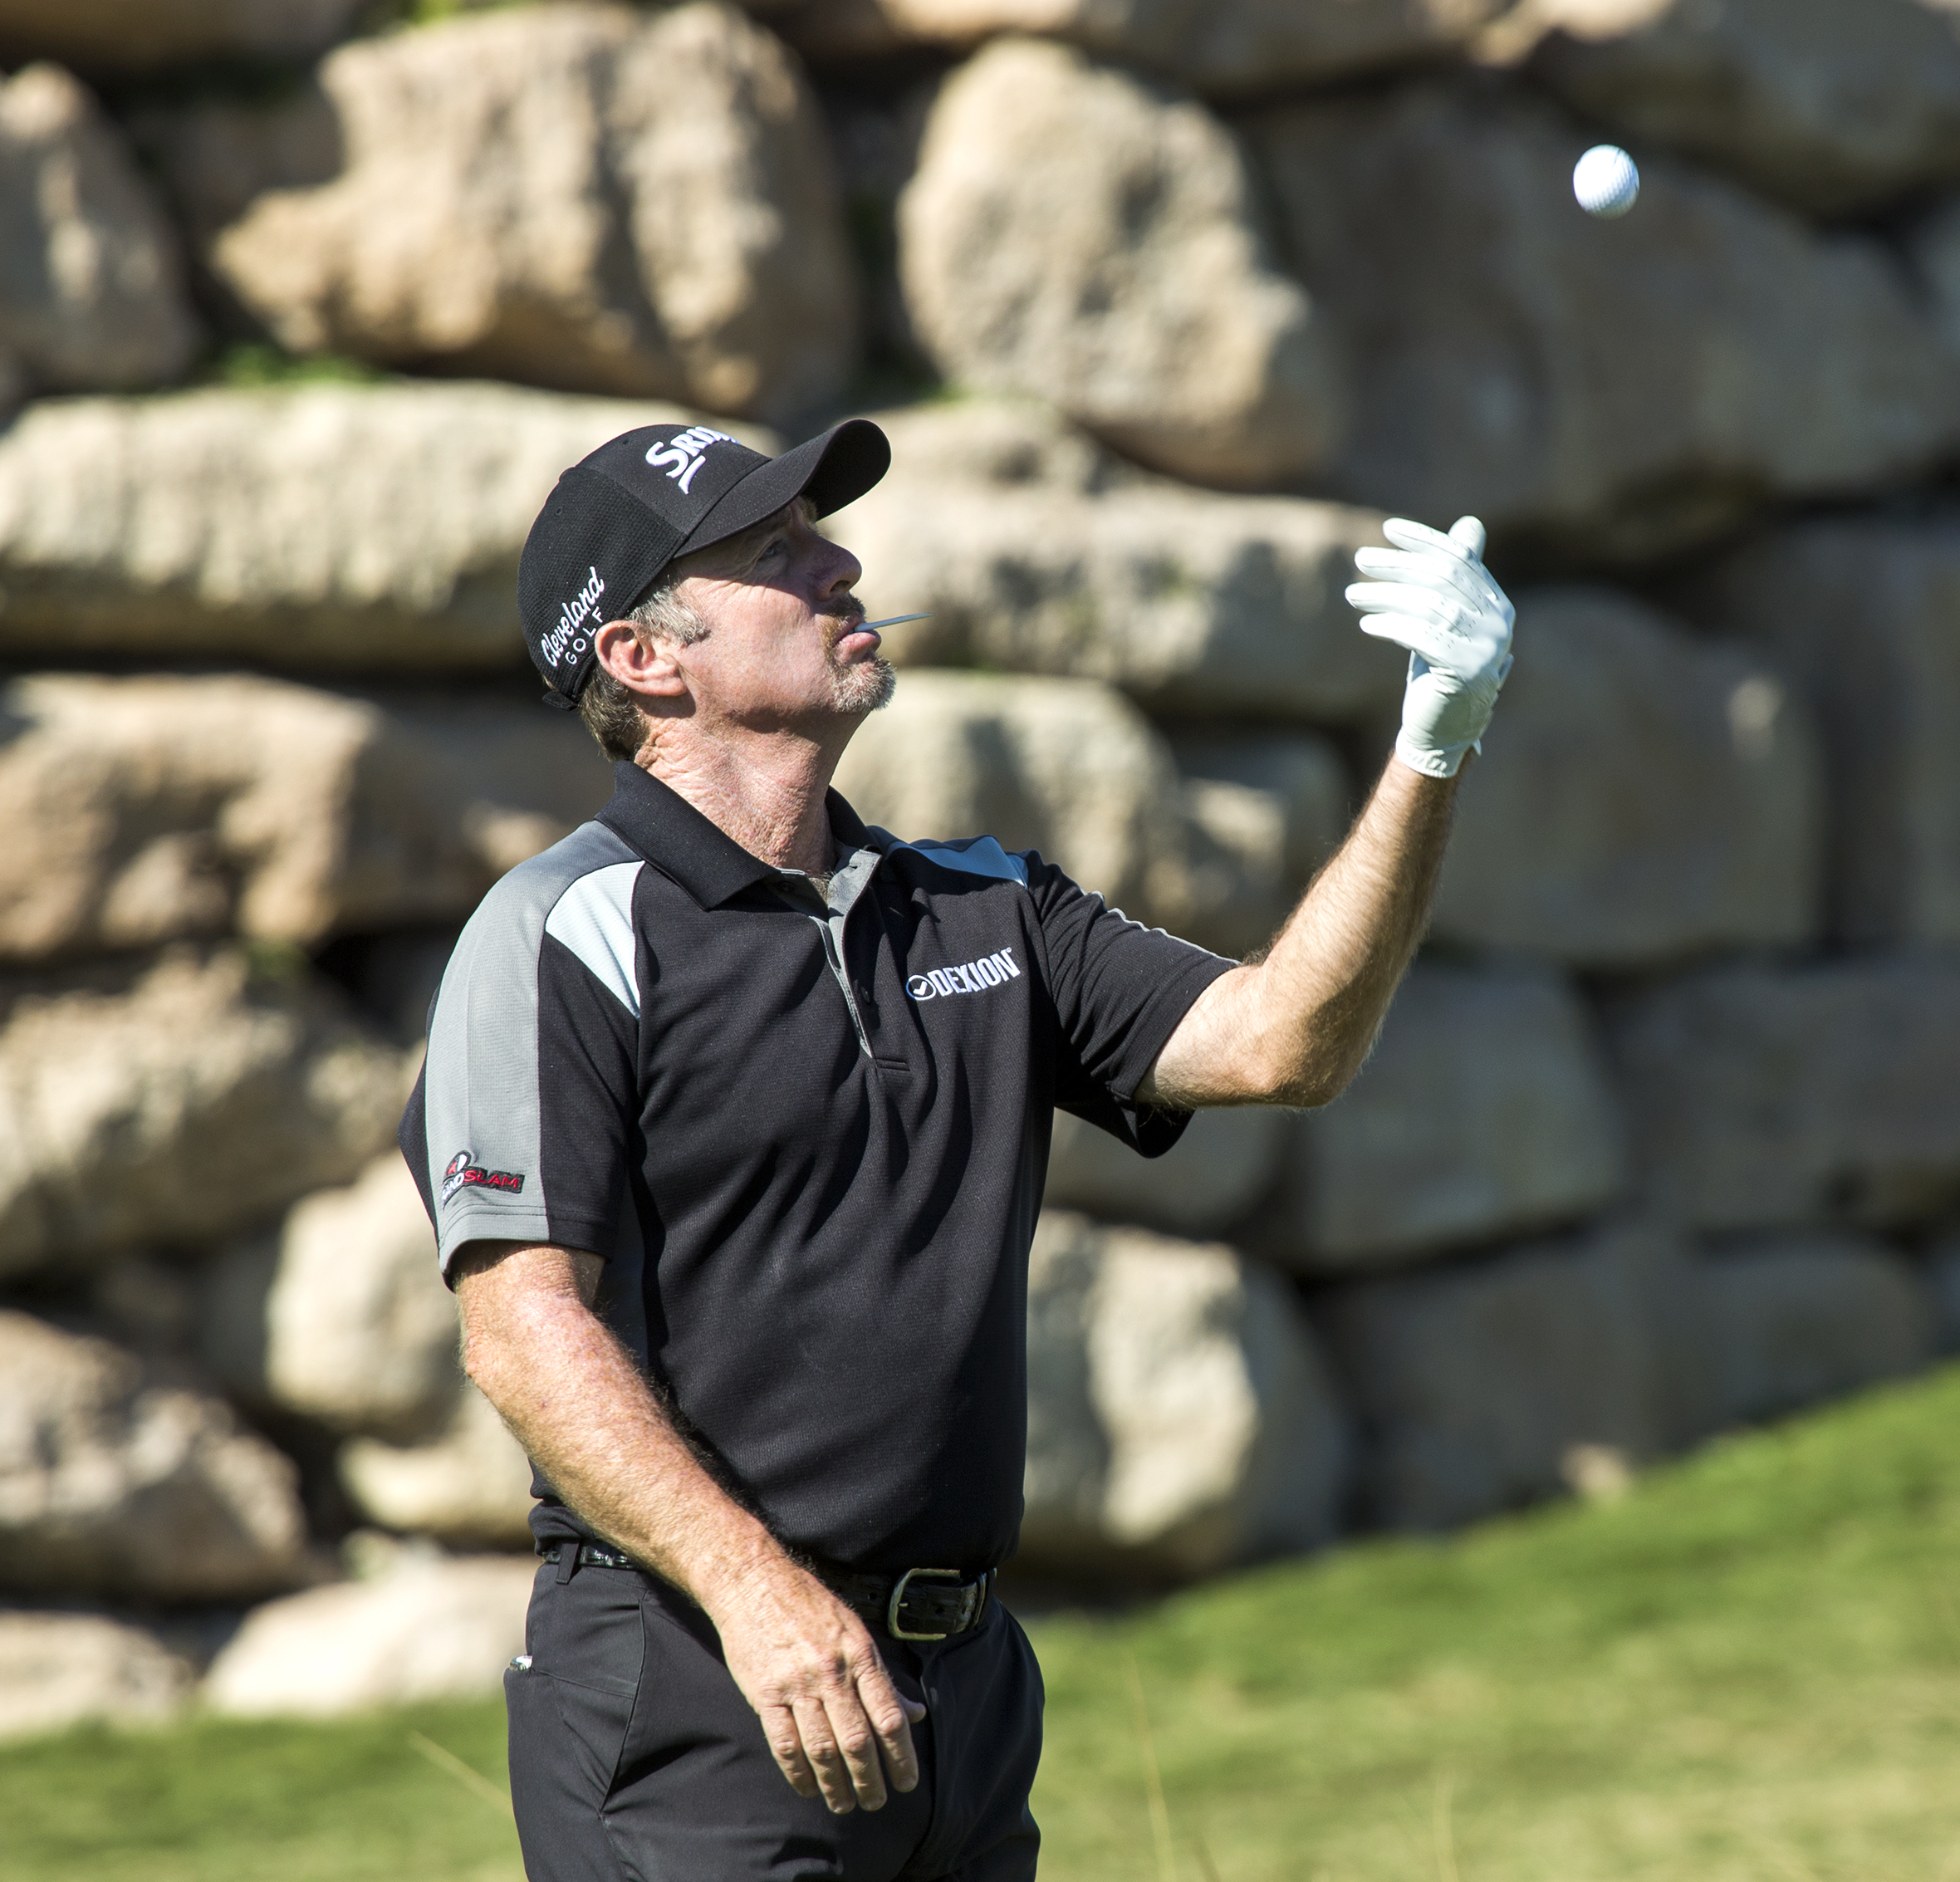 Rod Pampling, from Australia, tosses a golf ball while waiting to tee off on the 17th hole on the opening day of the Shriners Hospitals for Children Open golf tournament in Las Vegas, Thursday, Nov. 3, 2016. (Jeff Scheid/Las Vegas Review-Journal via AP)